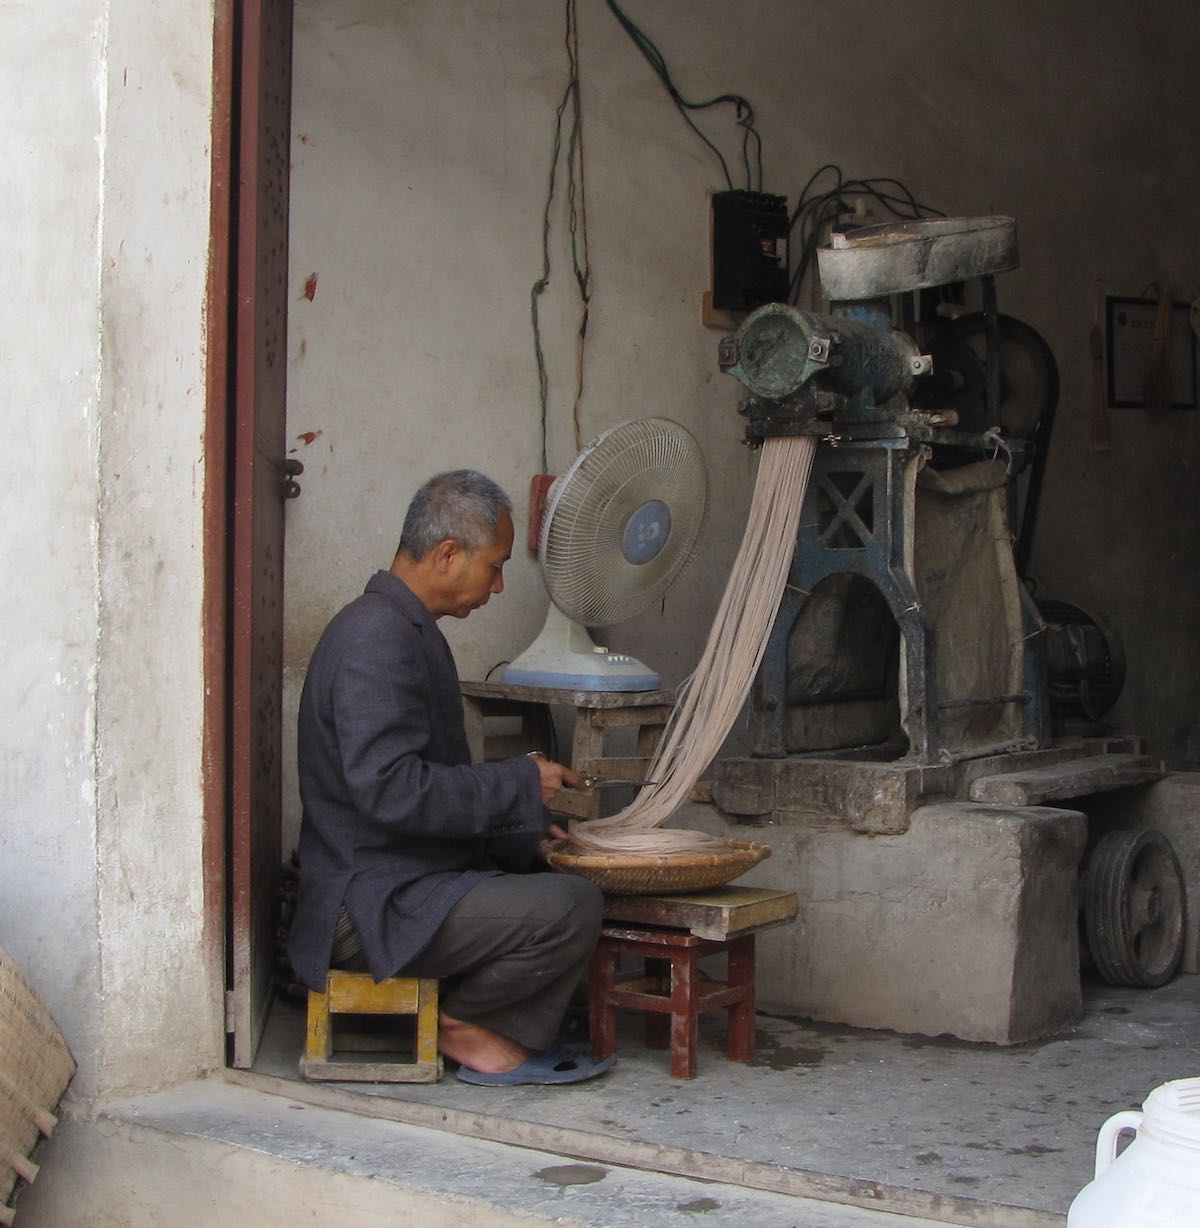 Seated Man using a machine to make noodles